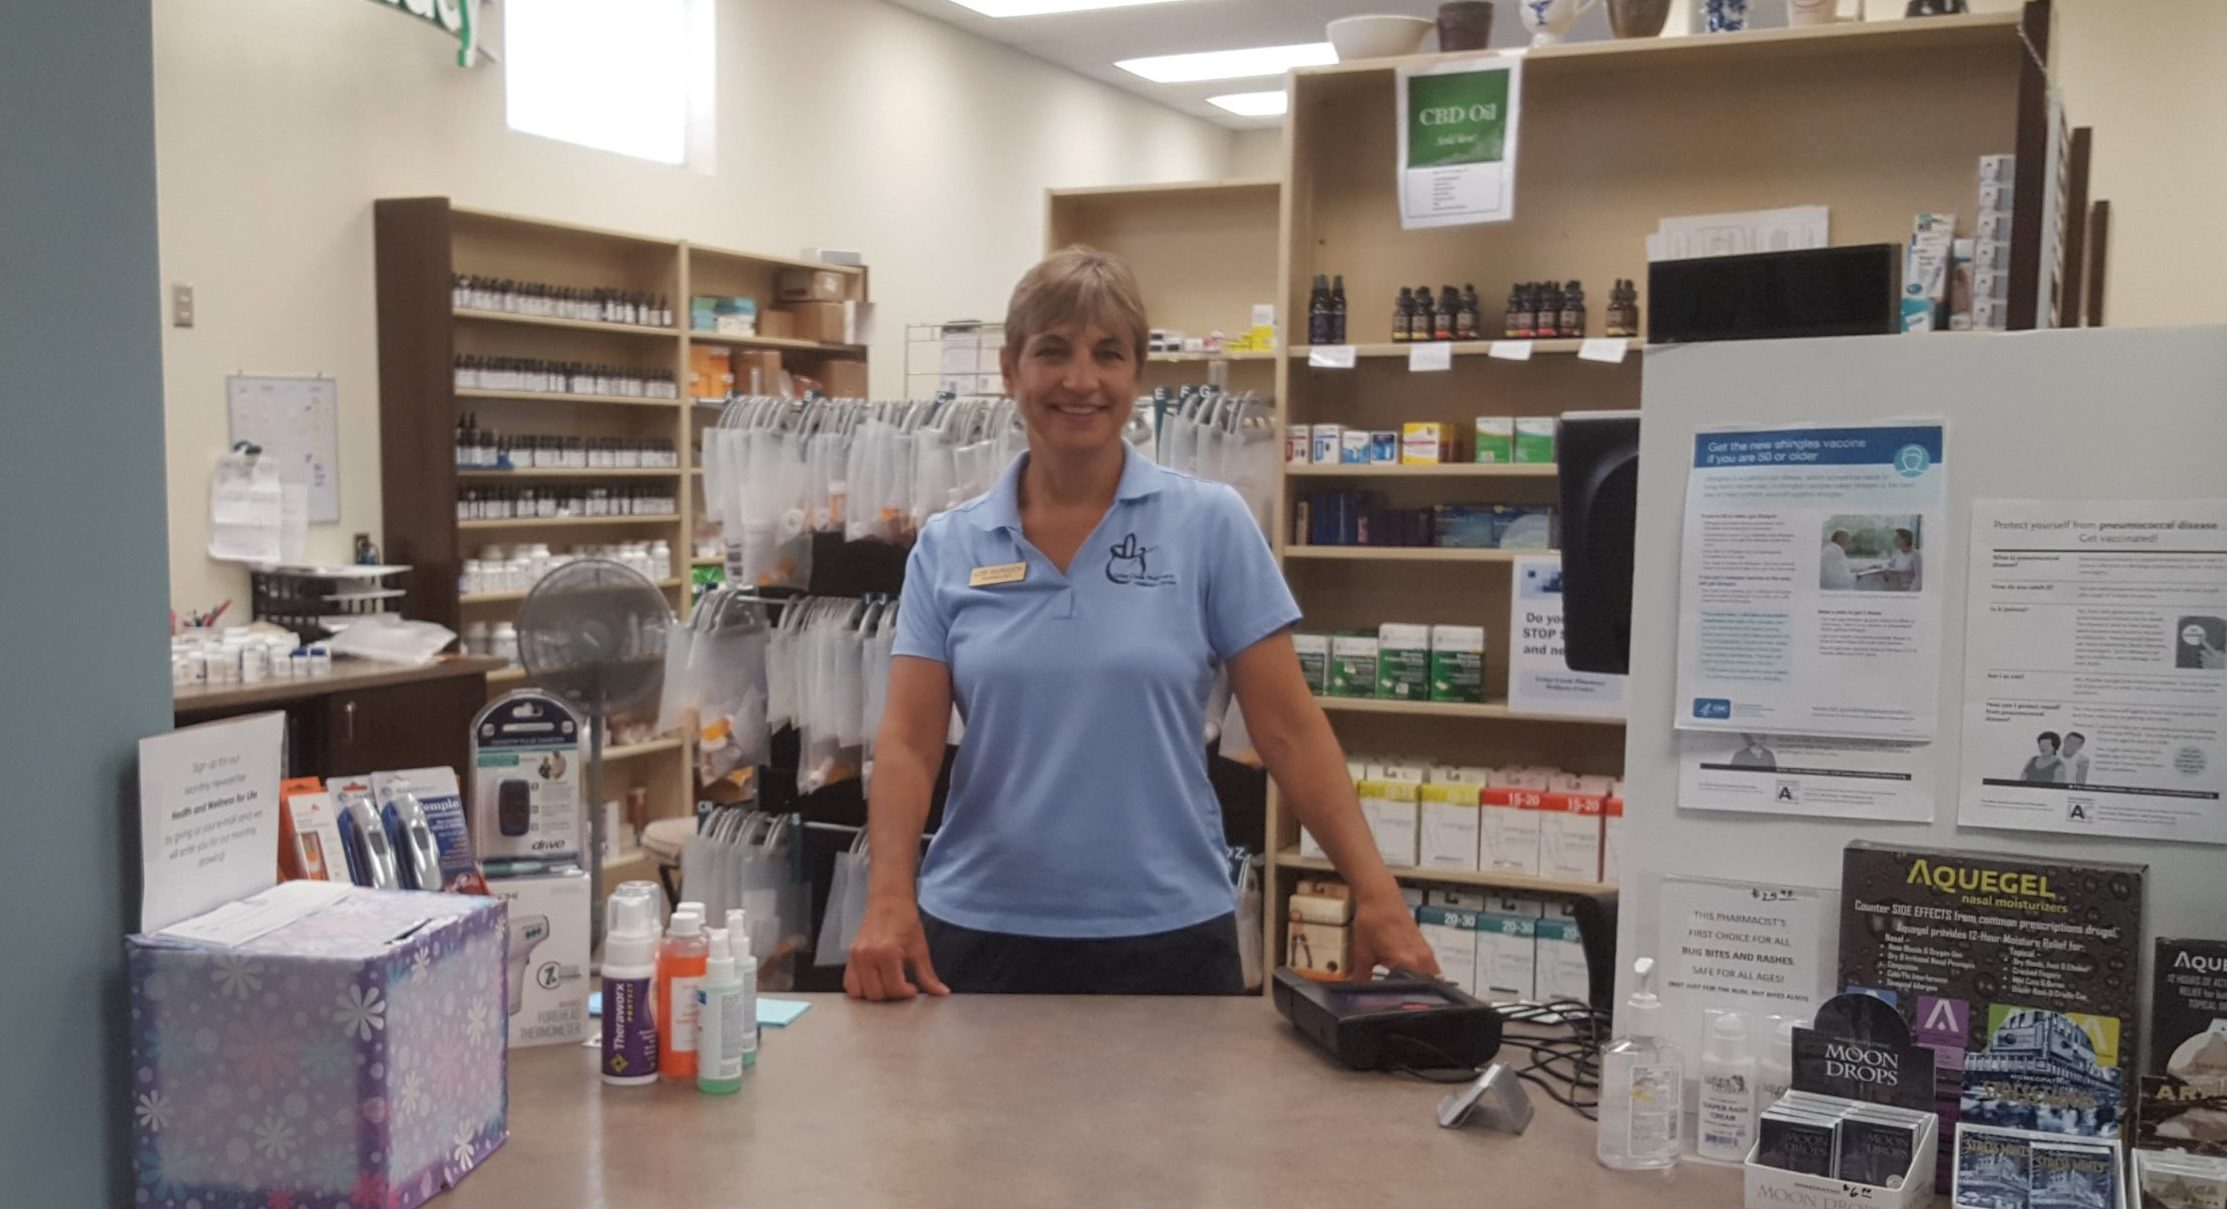 Pharmacist Spotlight - Lori Murdock